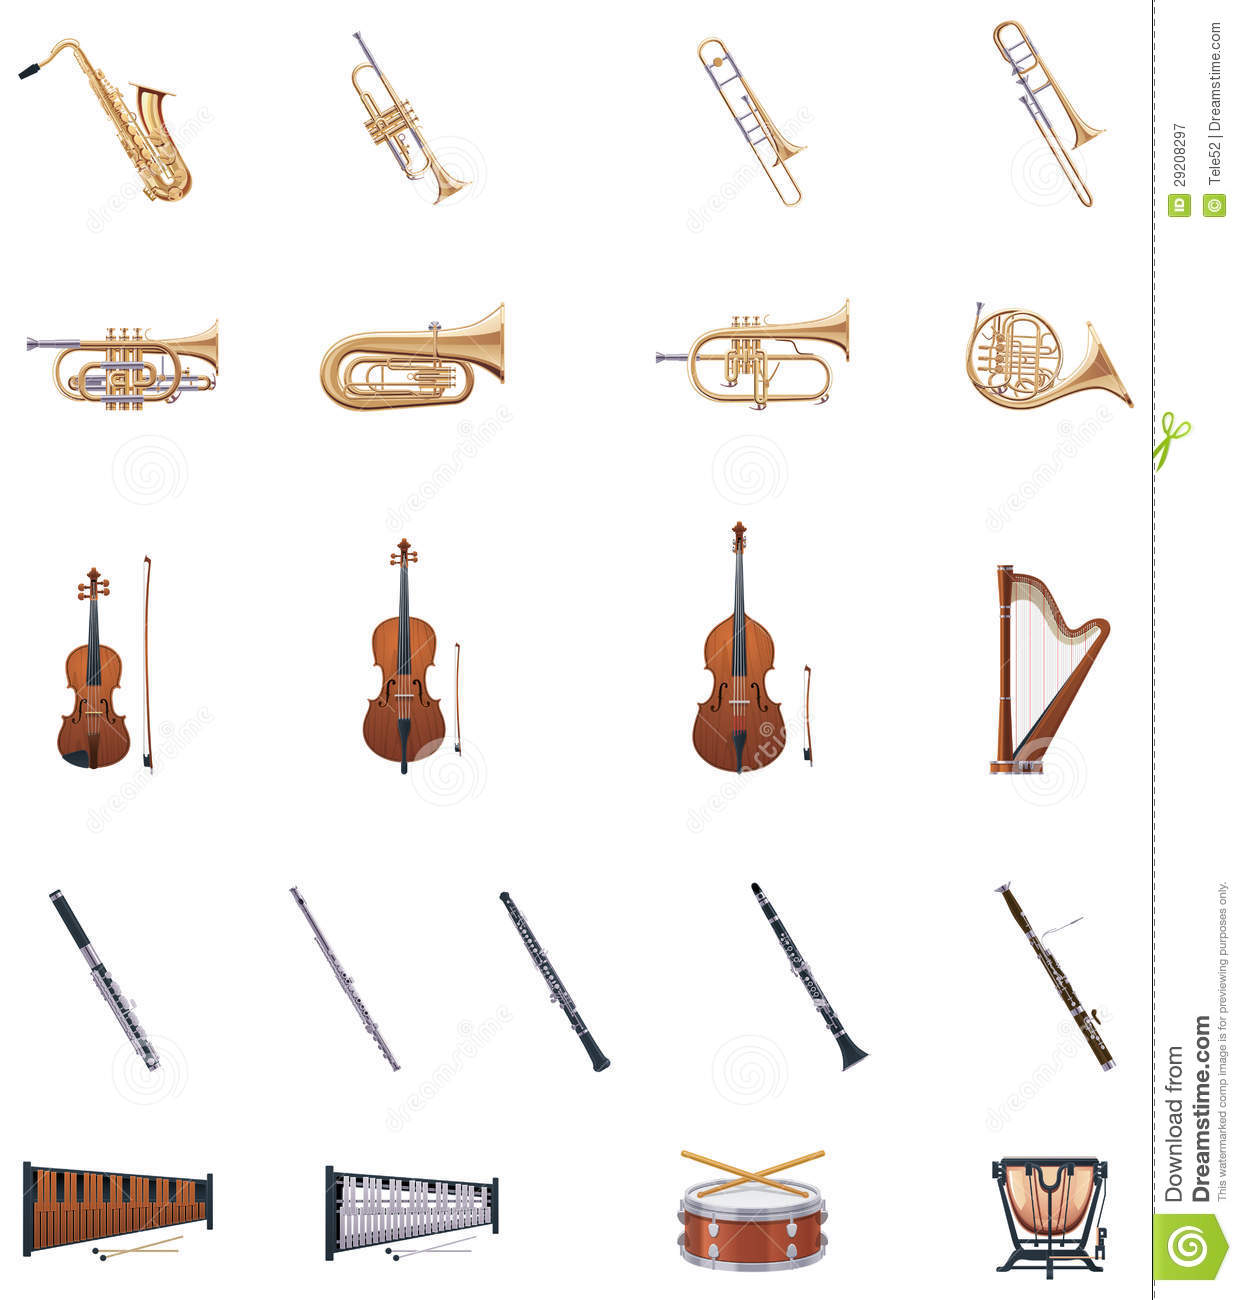 String Orchestra Instruments Clipart Vector Instruments Of The